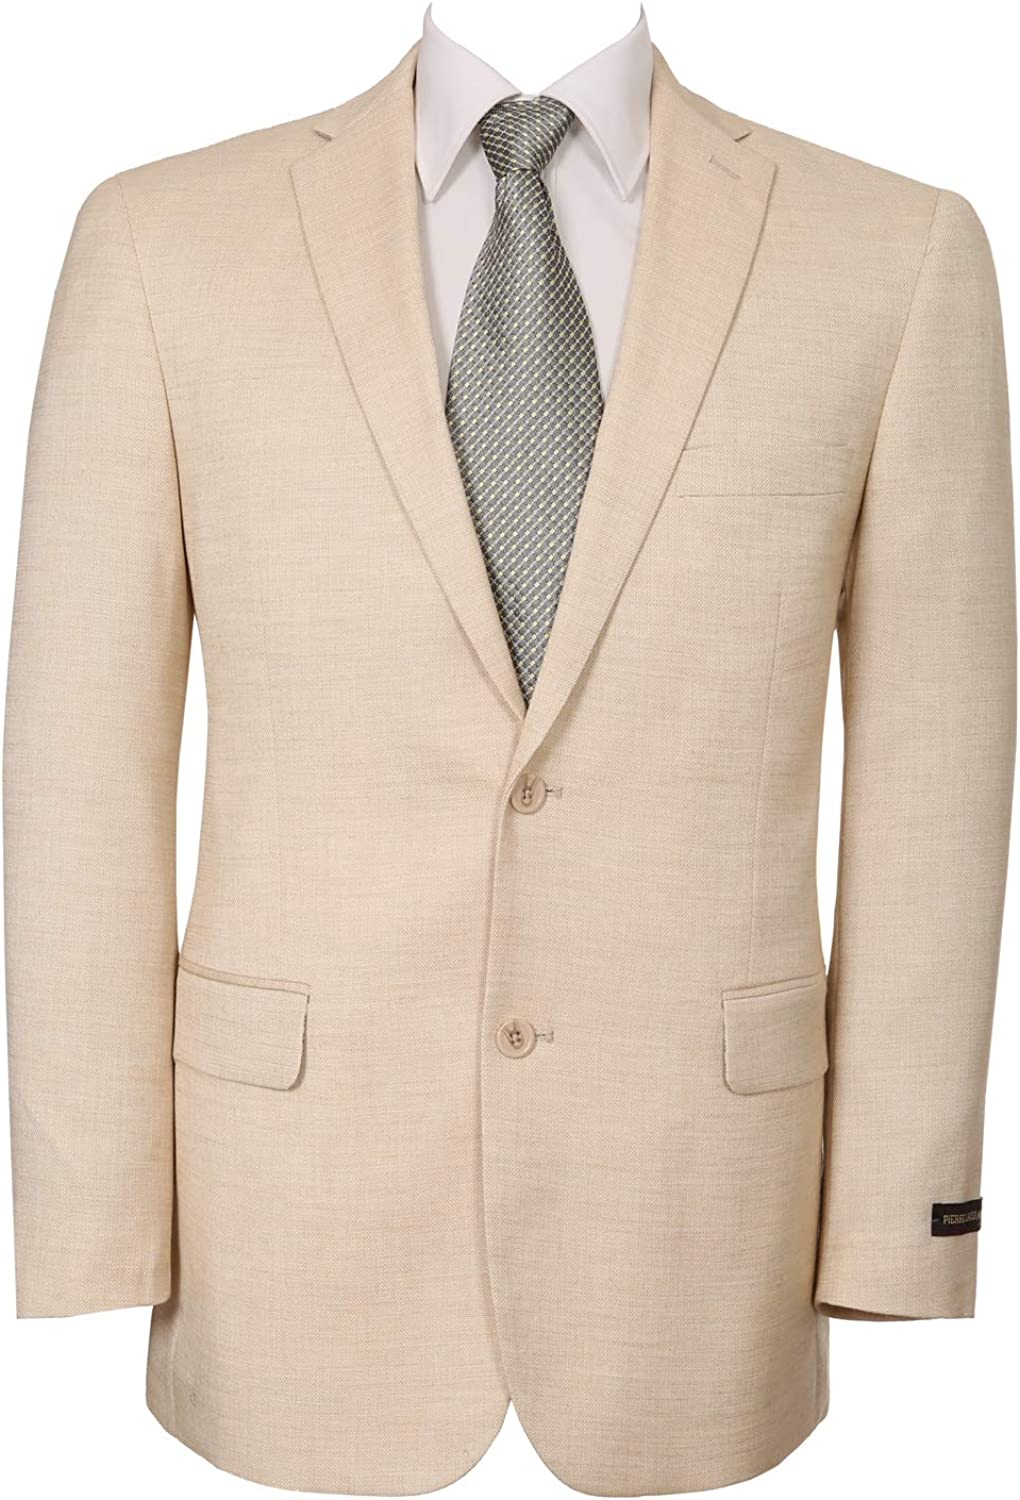 Men's Classical Fit Blazer Two Buttons and Notched Lapel Stretch Suit Jacket